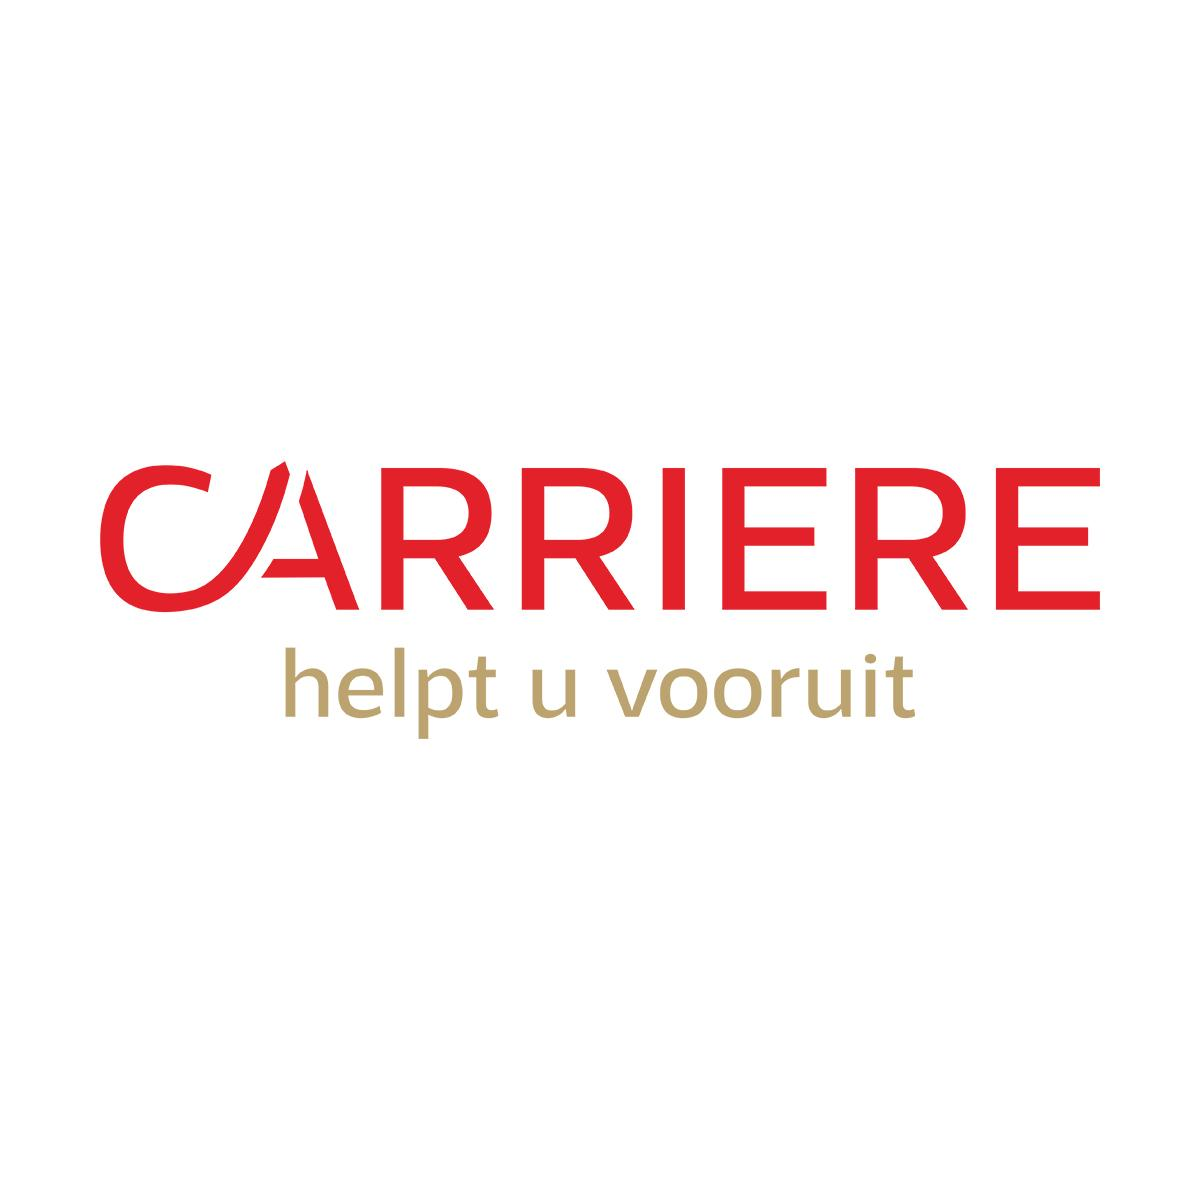 Carriere logo